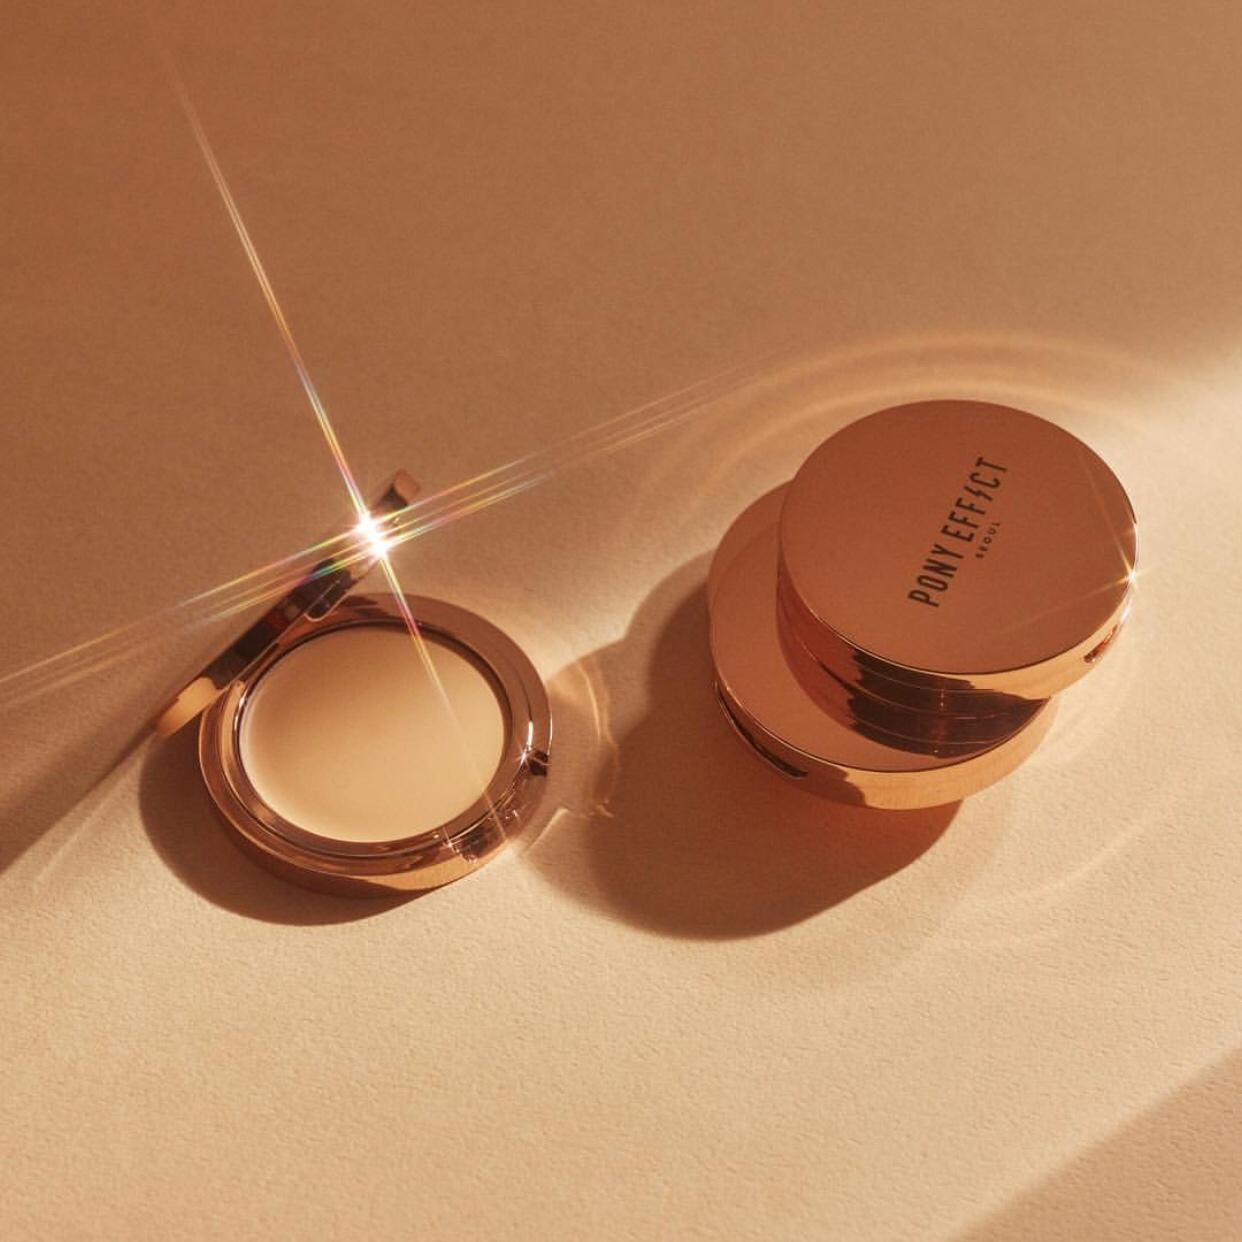 Buy [PONY EFFECT] Cover Up Pro Concealer Singapore